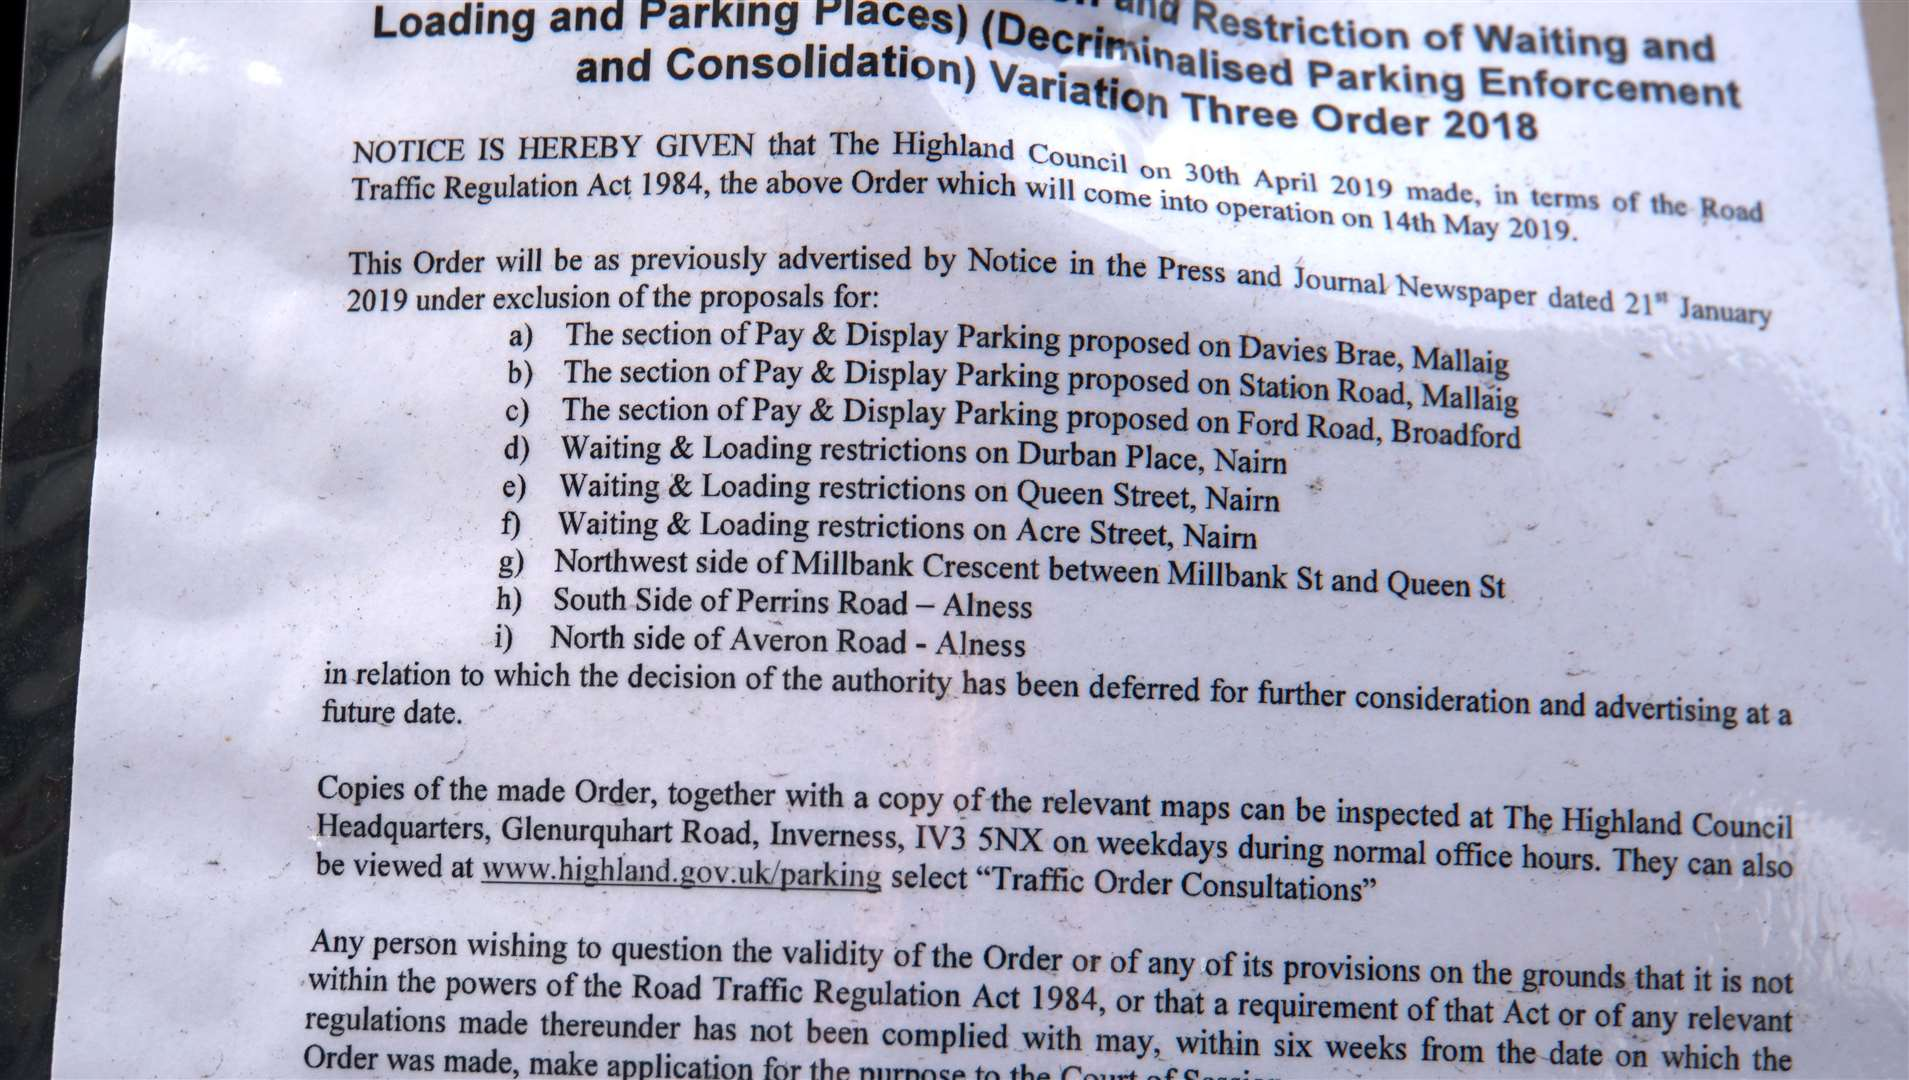 Confusing signs have been posted by Highland Council that make no mention of a Caithness street location.